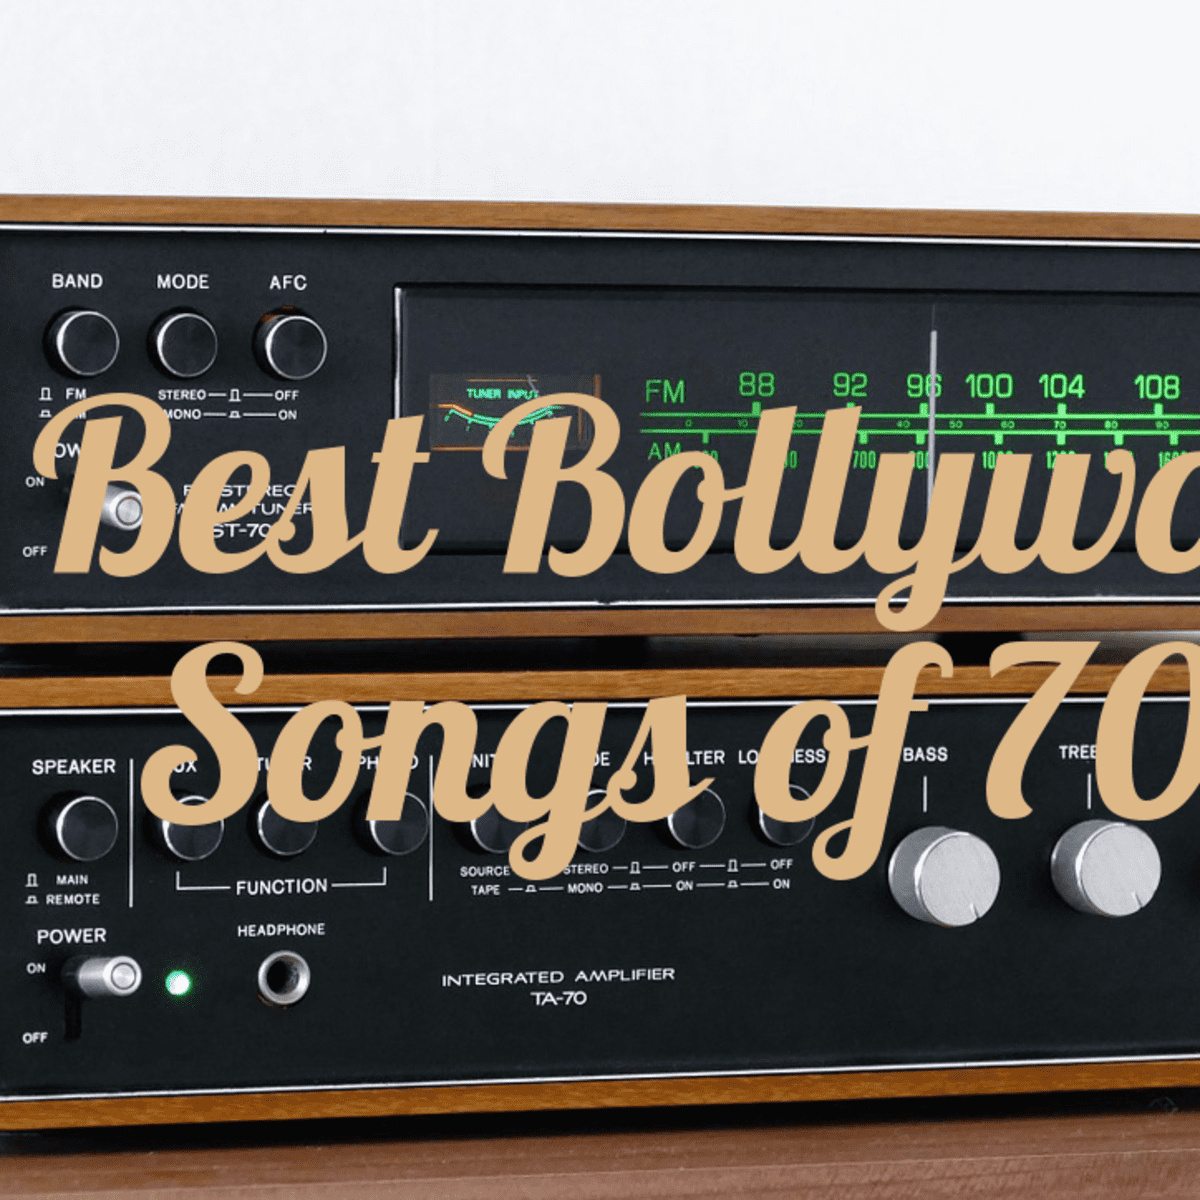 Top 150 Hindi Songs Of 1970s Spinditty Music Which is the most upbeat song(s) in. top 150 hindi songs of 1970s